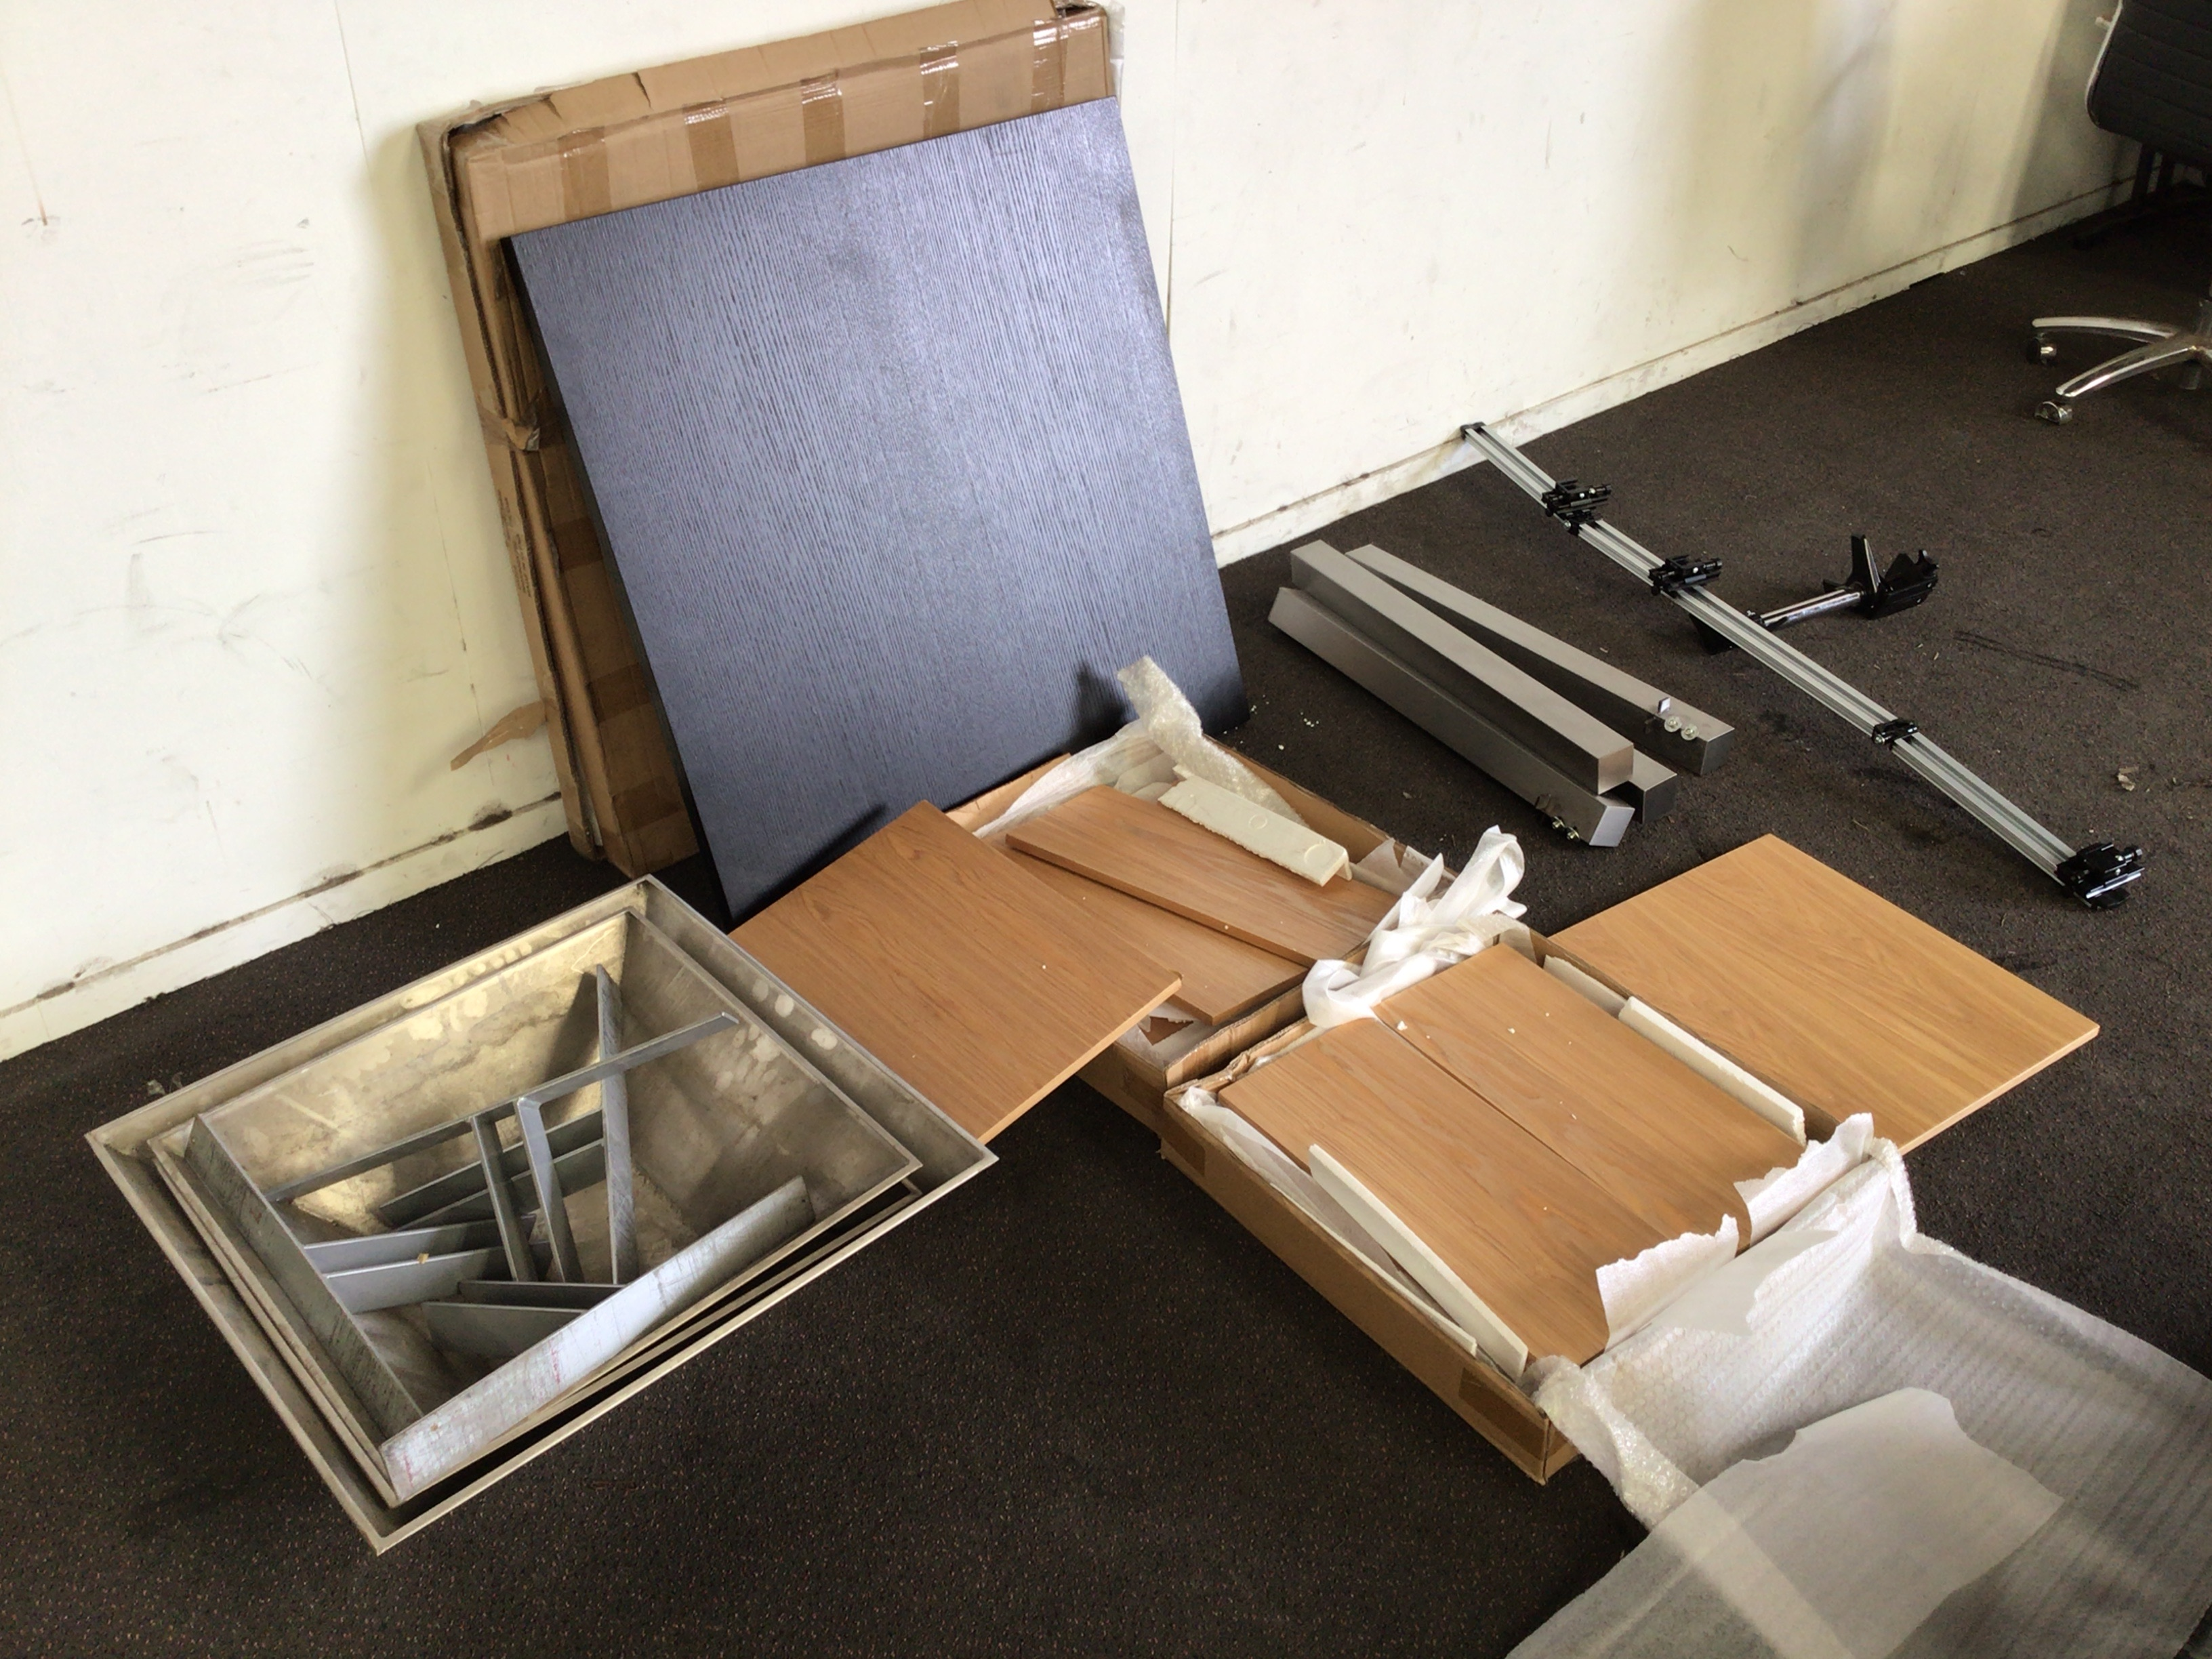 Plt Qty of Assorted Furniture Components